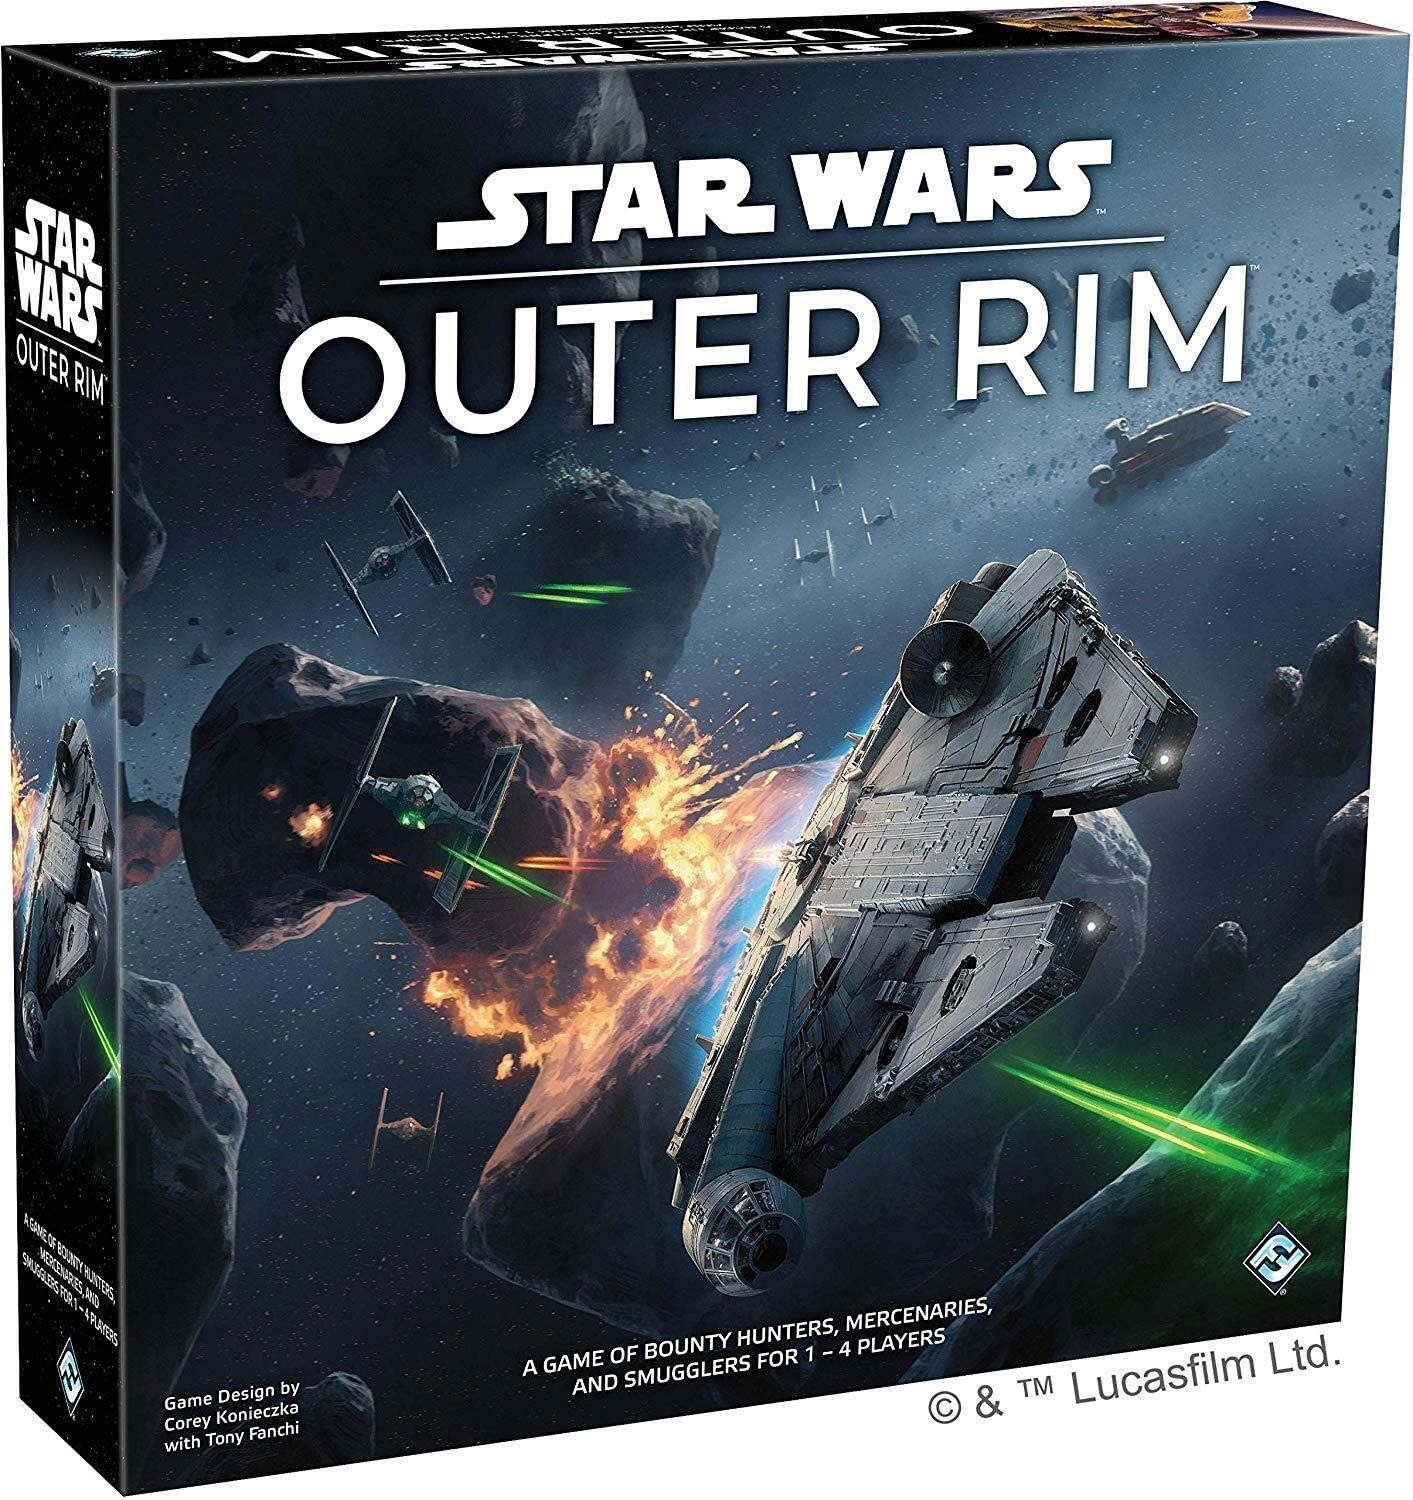 The packaging of the game, which features the Millennium Falcon